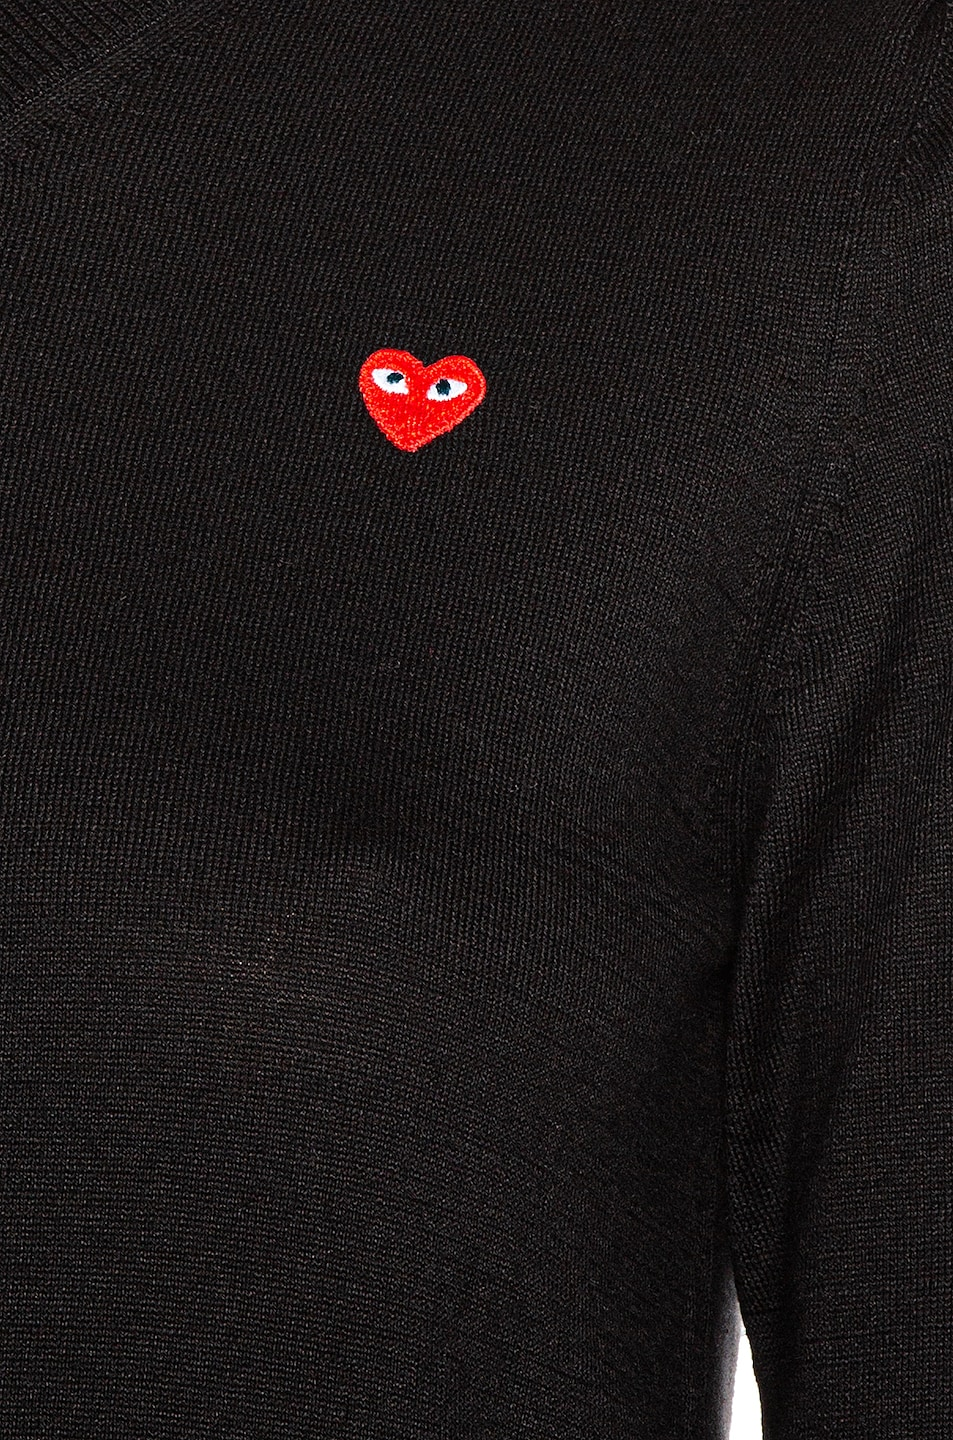 Image 5 of Comme Des Garcons PLAY Small Emblem V Neck Sweater in Black